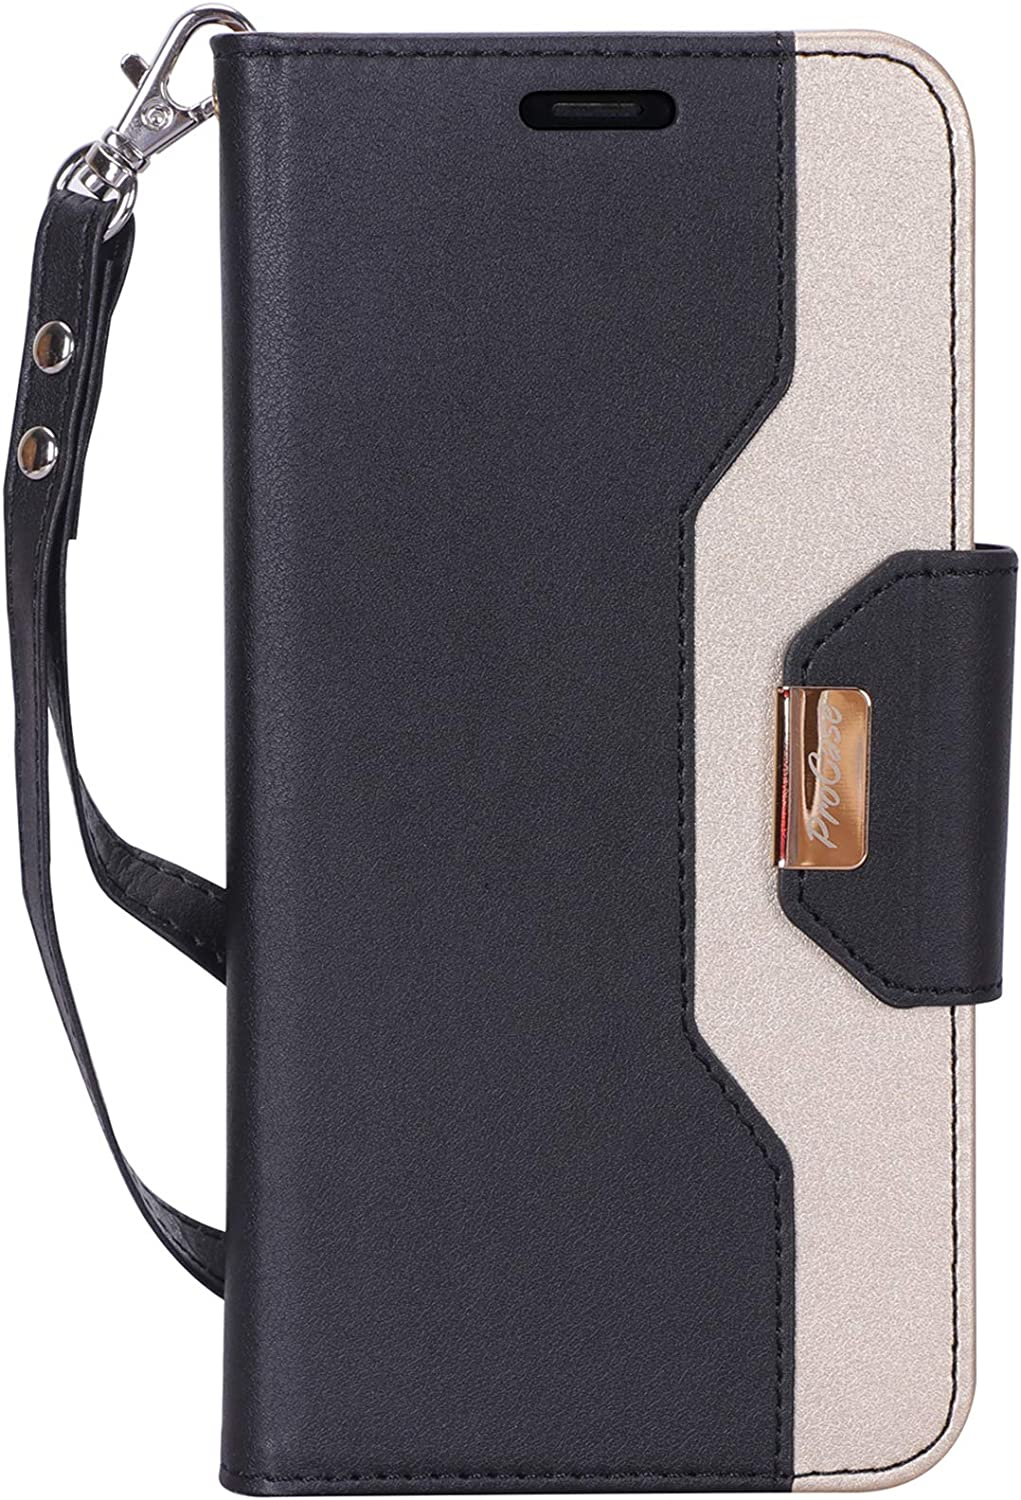 Cover for iPhone Xs Max Leather Card Holders Wallet case Extra-Protective Business Kickstand with Free Waterproof-Bag Judicious iPhone Xs Max Flip Case